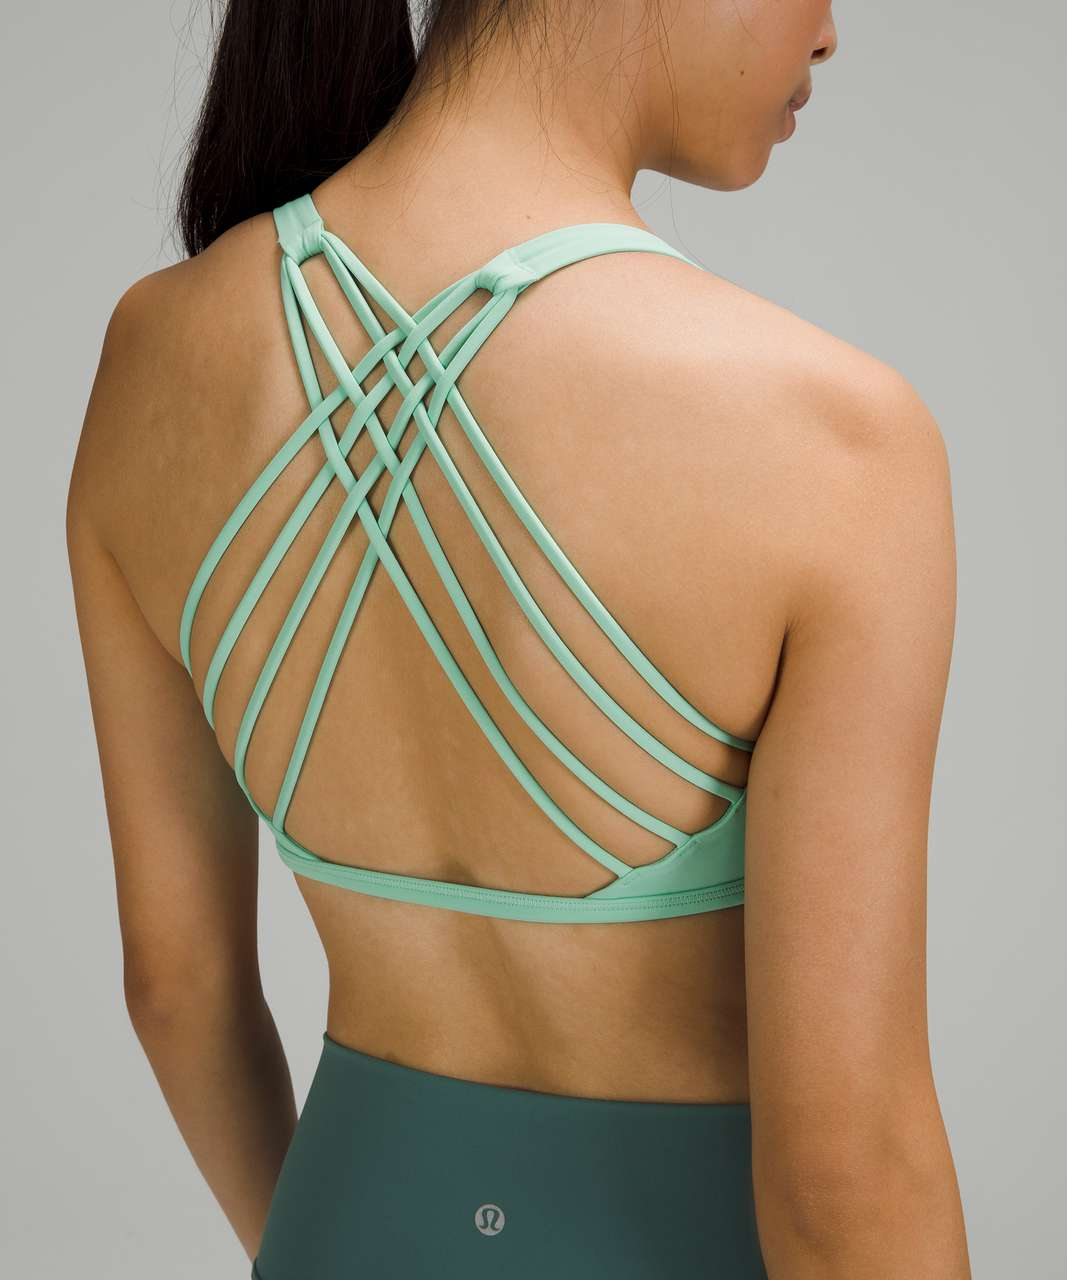 Lululemon Free to Be Bra - Wild *Light Support, A/B Cup - Wild Mint